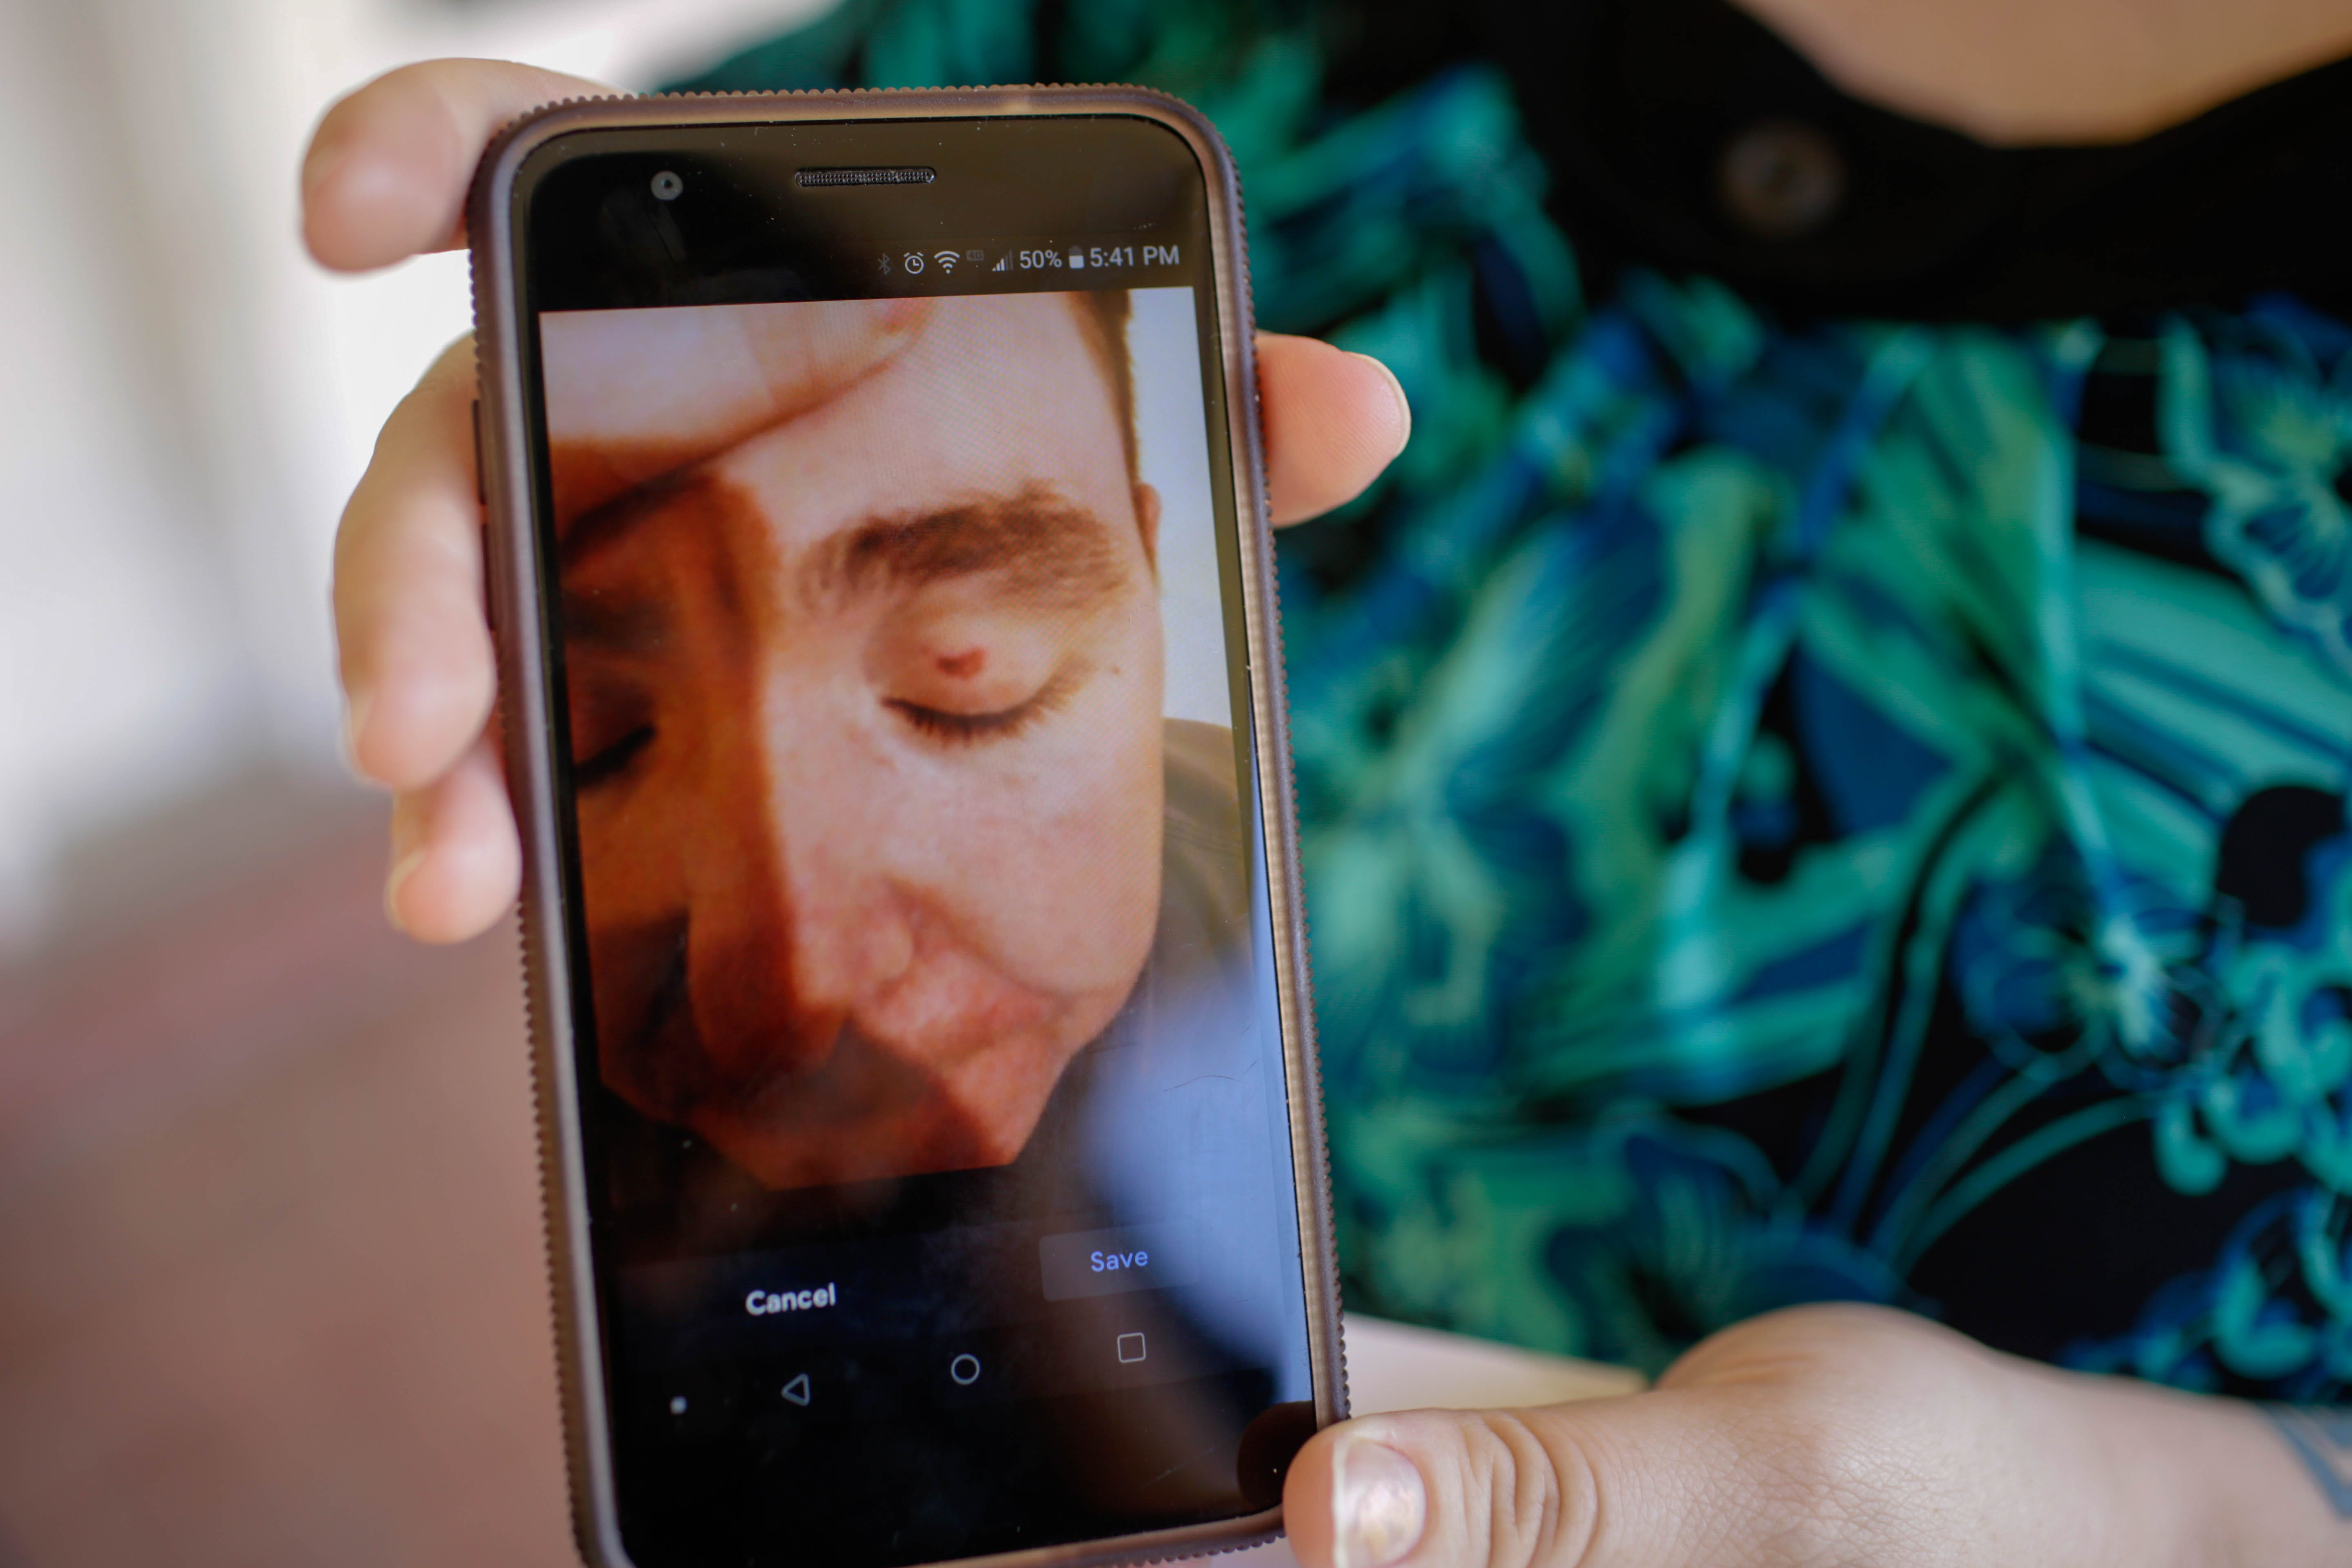 Sgt Bryan Gaston's wife shows a photo of a boil on his eyelid that appeared after a prisoner threw feces and urine in Gaston's face while he worked at Wilkinson County Correctional Facility in Woodville, Miss.